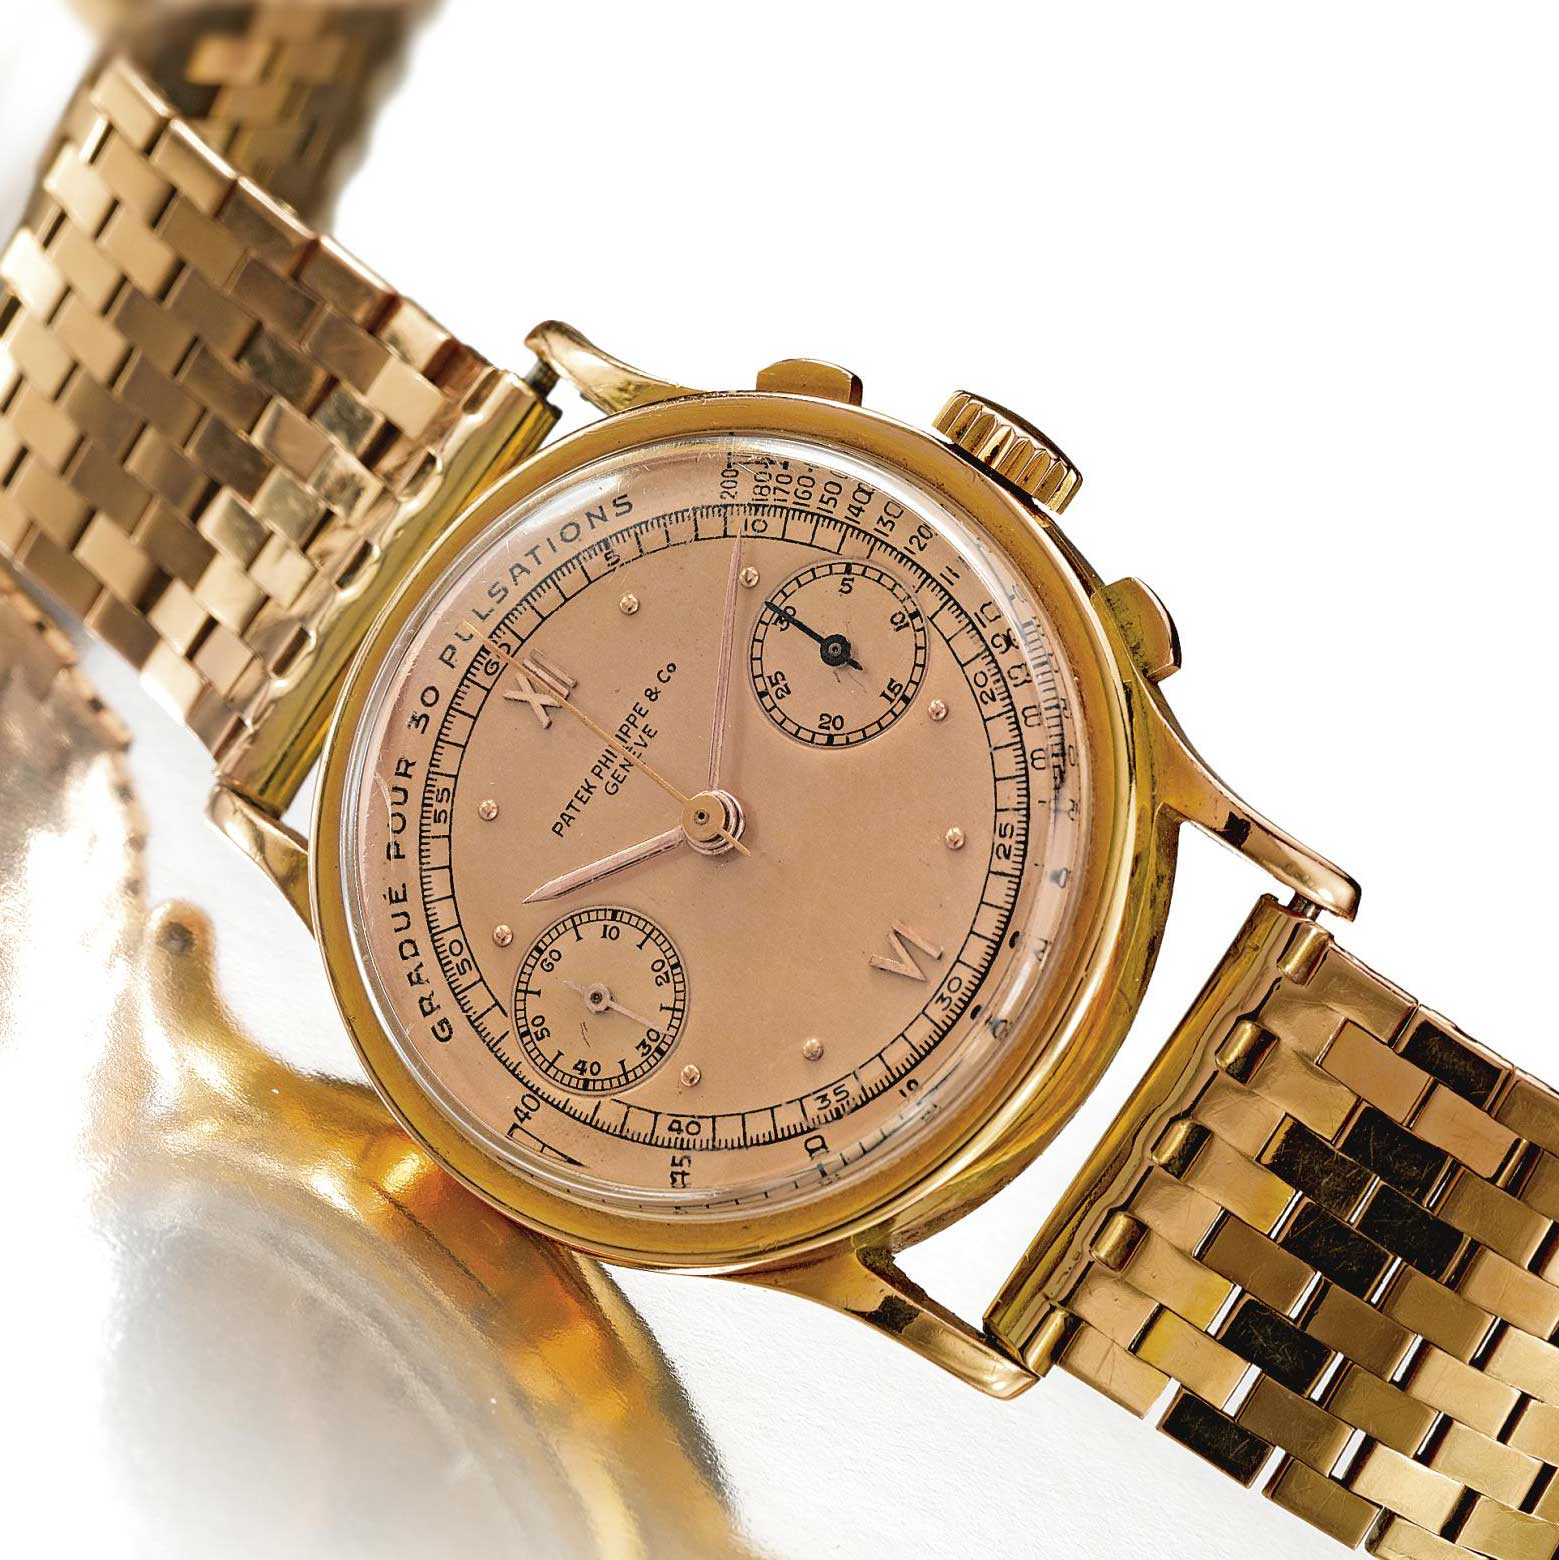 1940 Patek Philippe ref. 533 pink gold chronograph with satin finished pink dial, Roman numerals and pulsation scale fitted on a pink gold brick-form associated bracelet (Image: Sothebys.com)